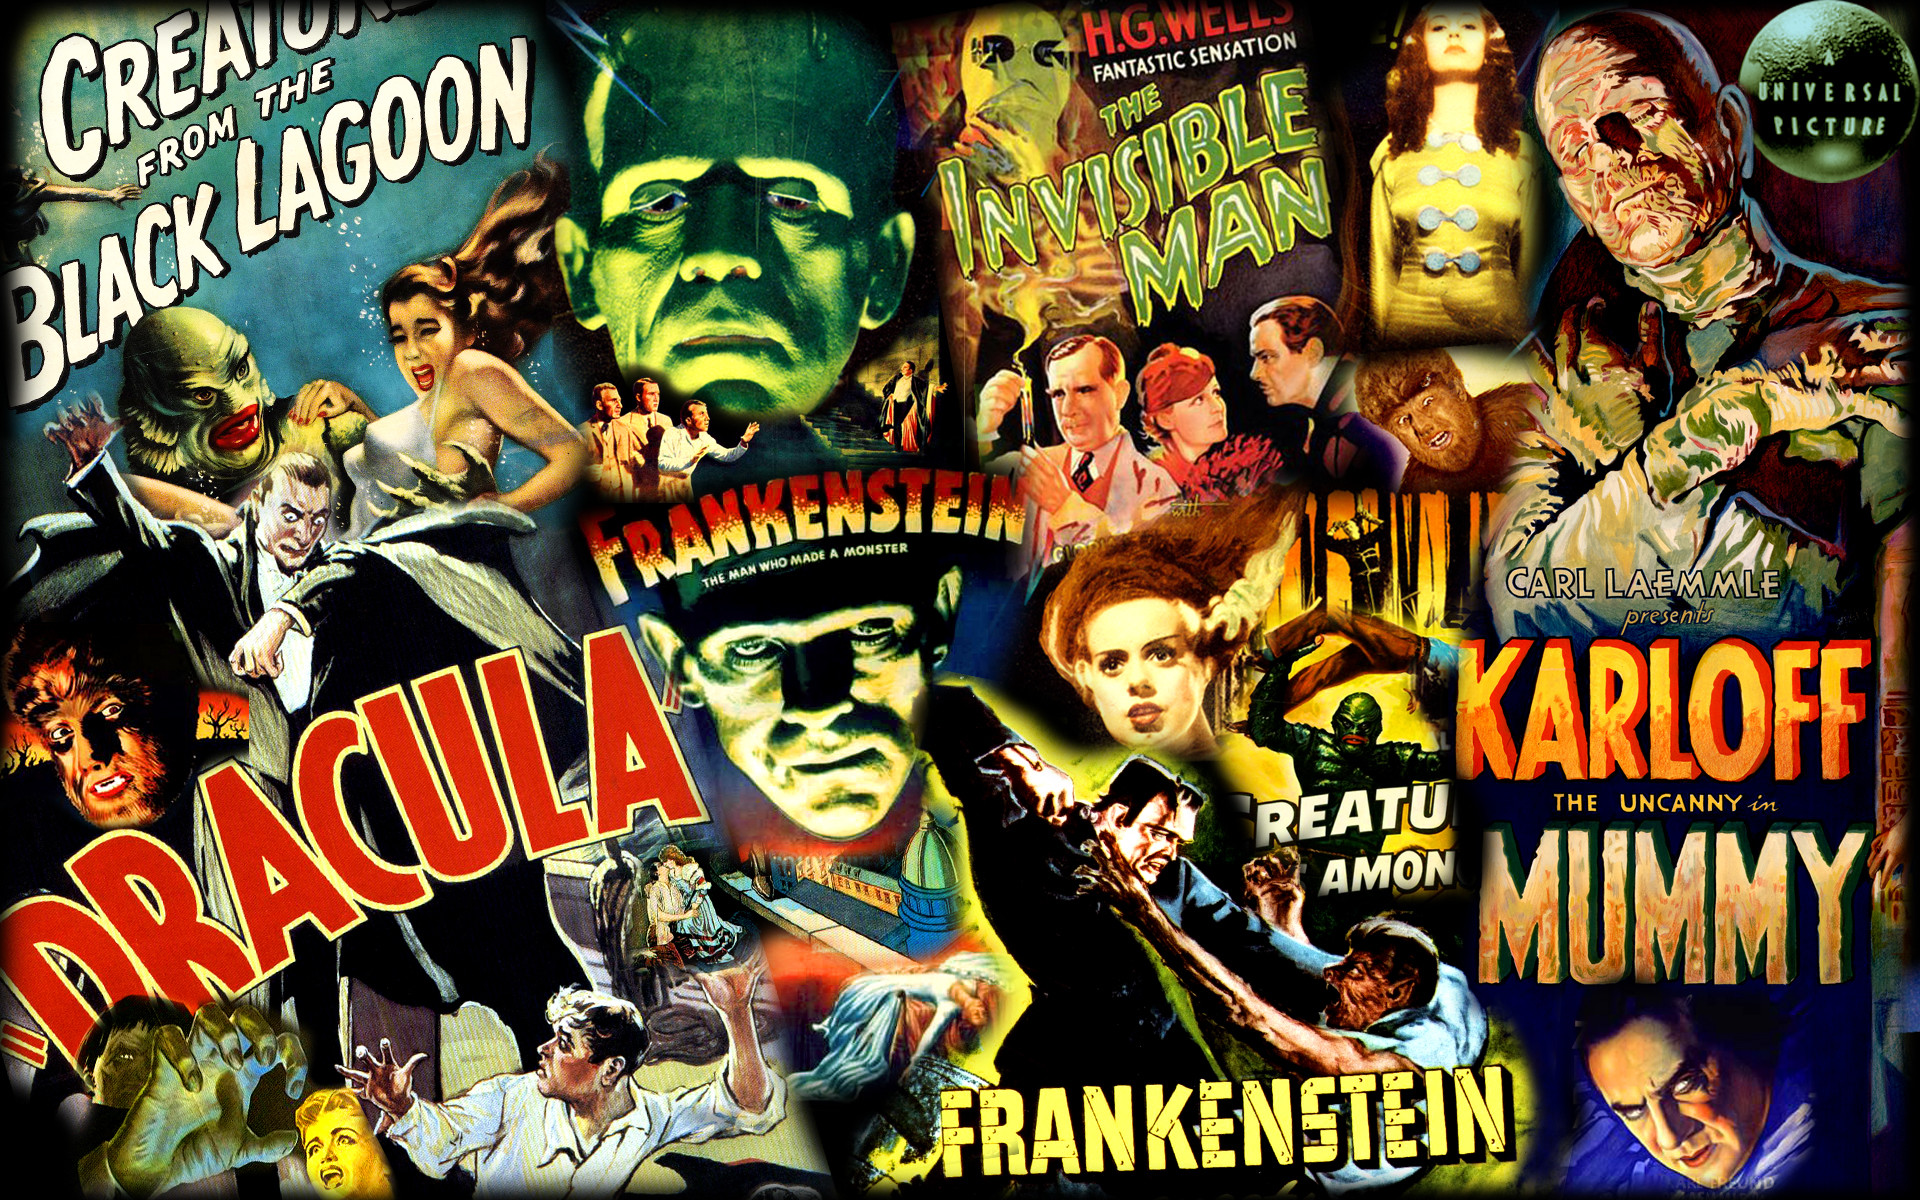 Classic movies posters